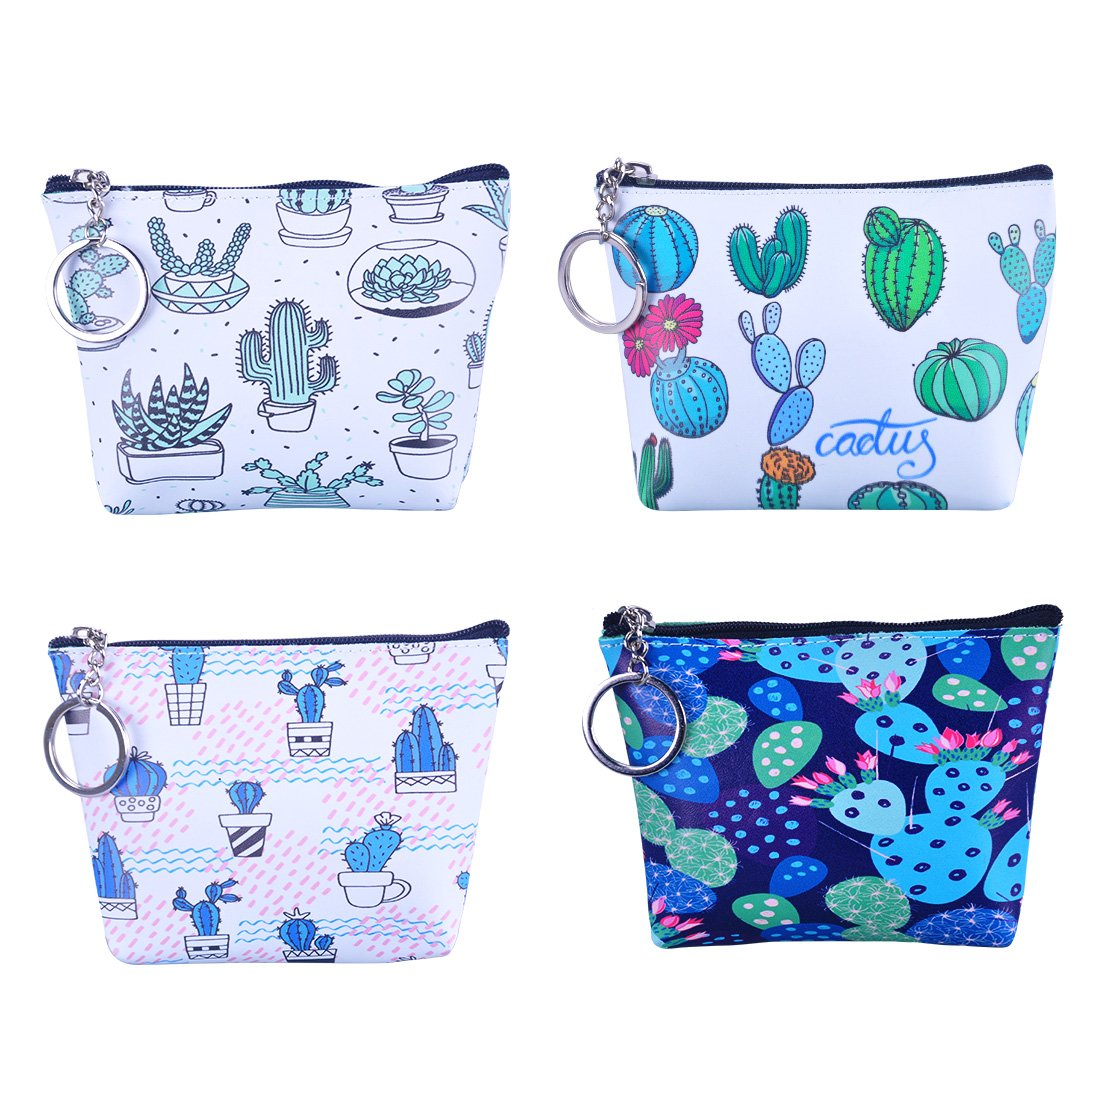 Oyachic 4PCS Coin Purse Change Pouch Mini Wallet Gifts for Women Girls